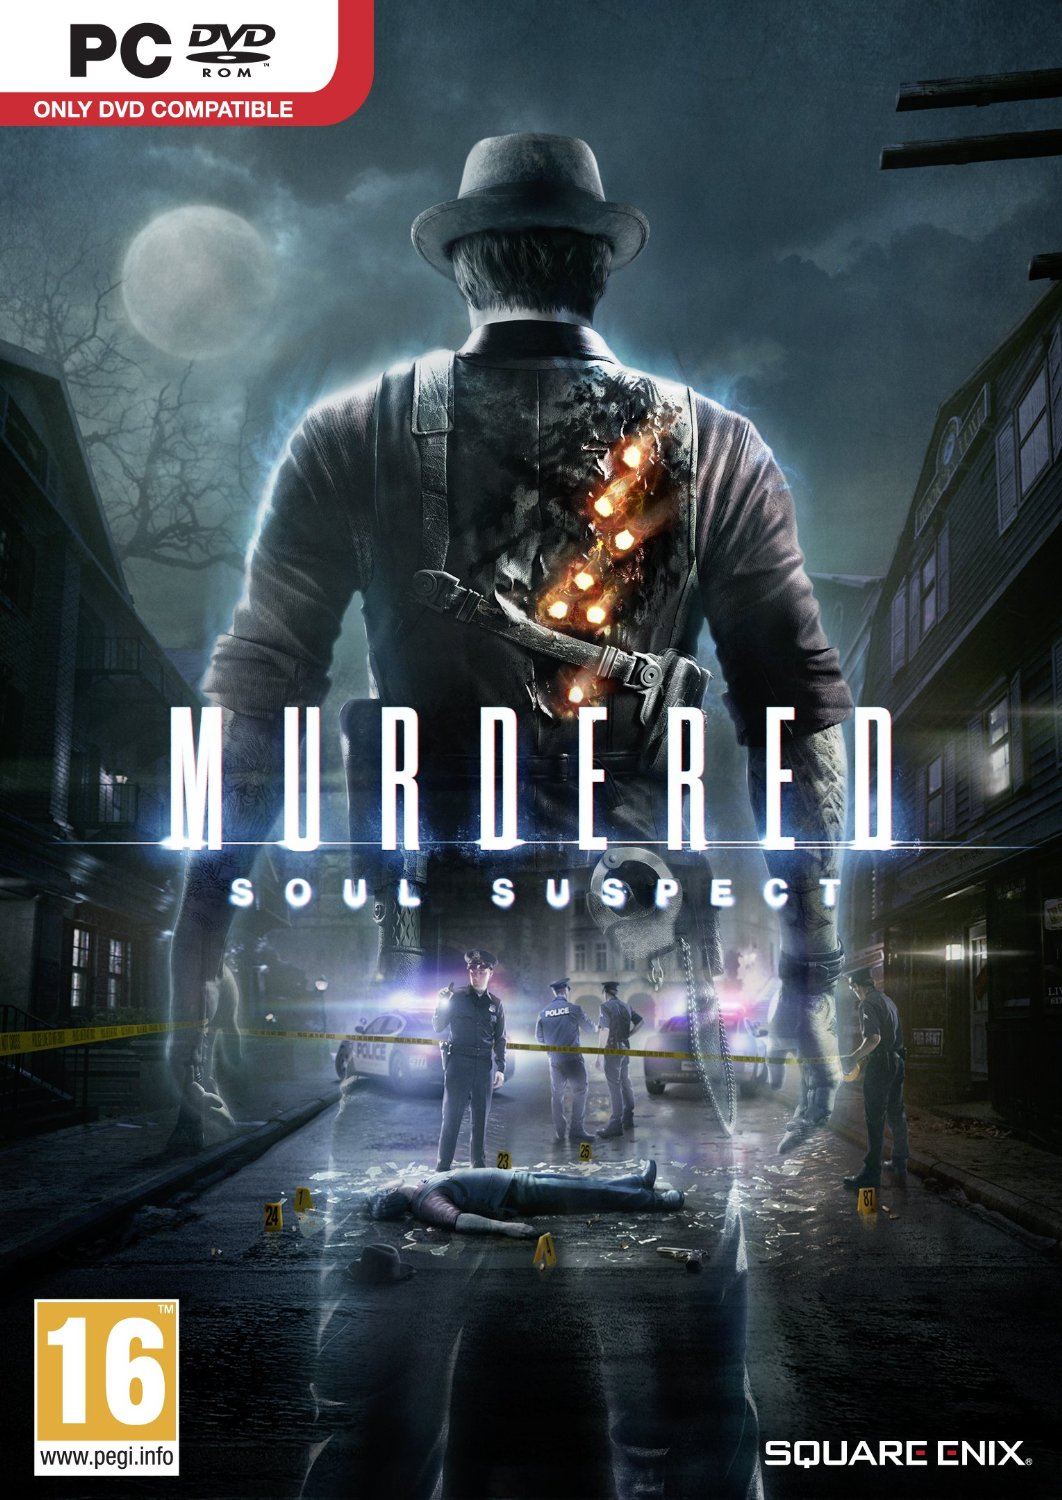 Murdered: Soul Suspect-PC By:Airtight Games Eur:12,99 Ден1:799